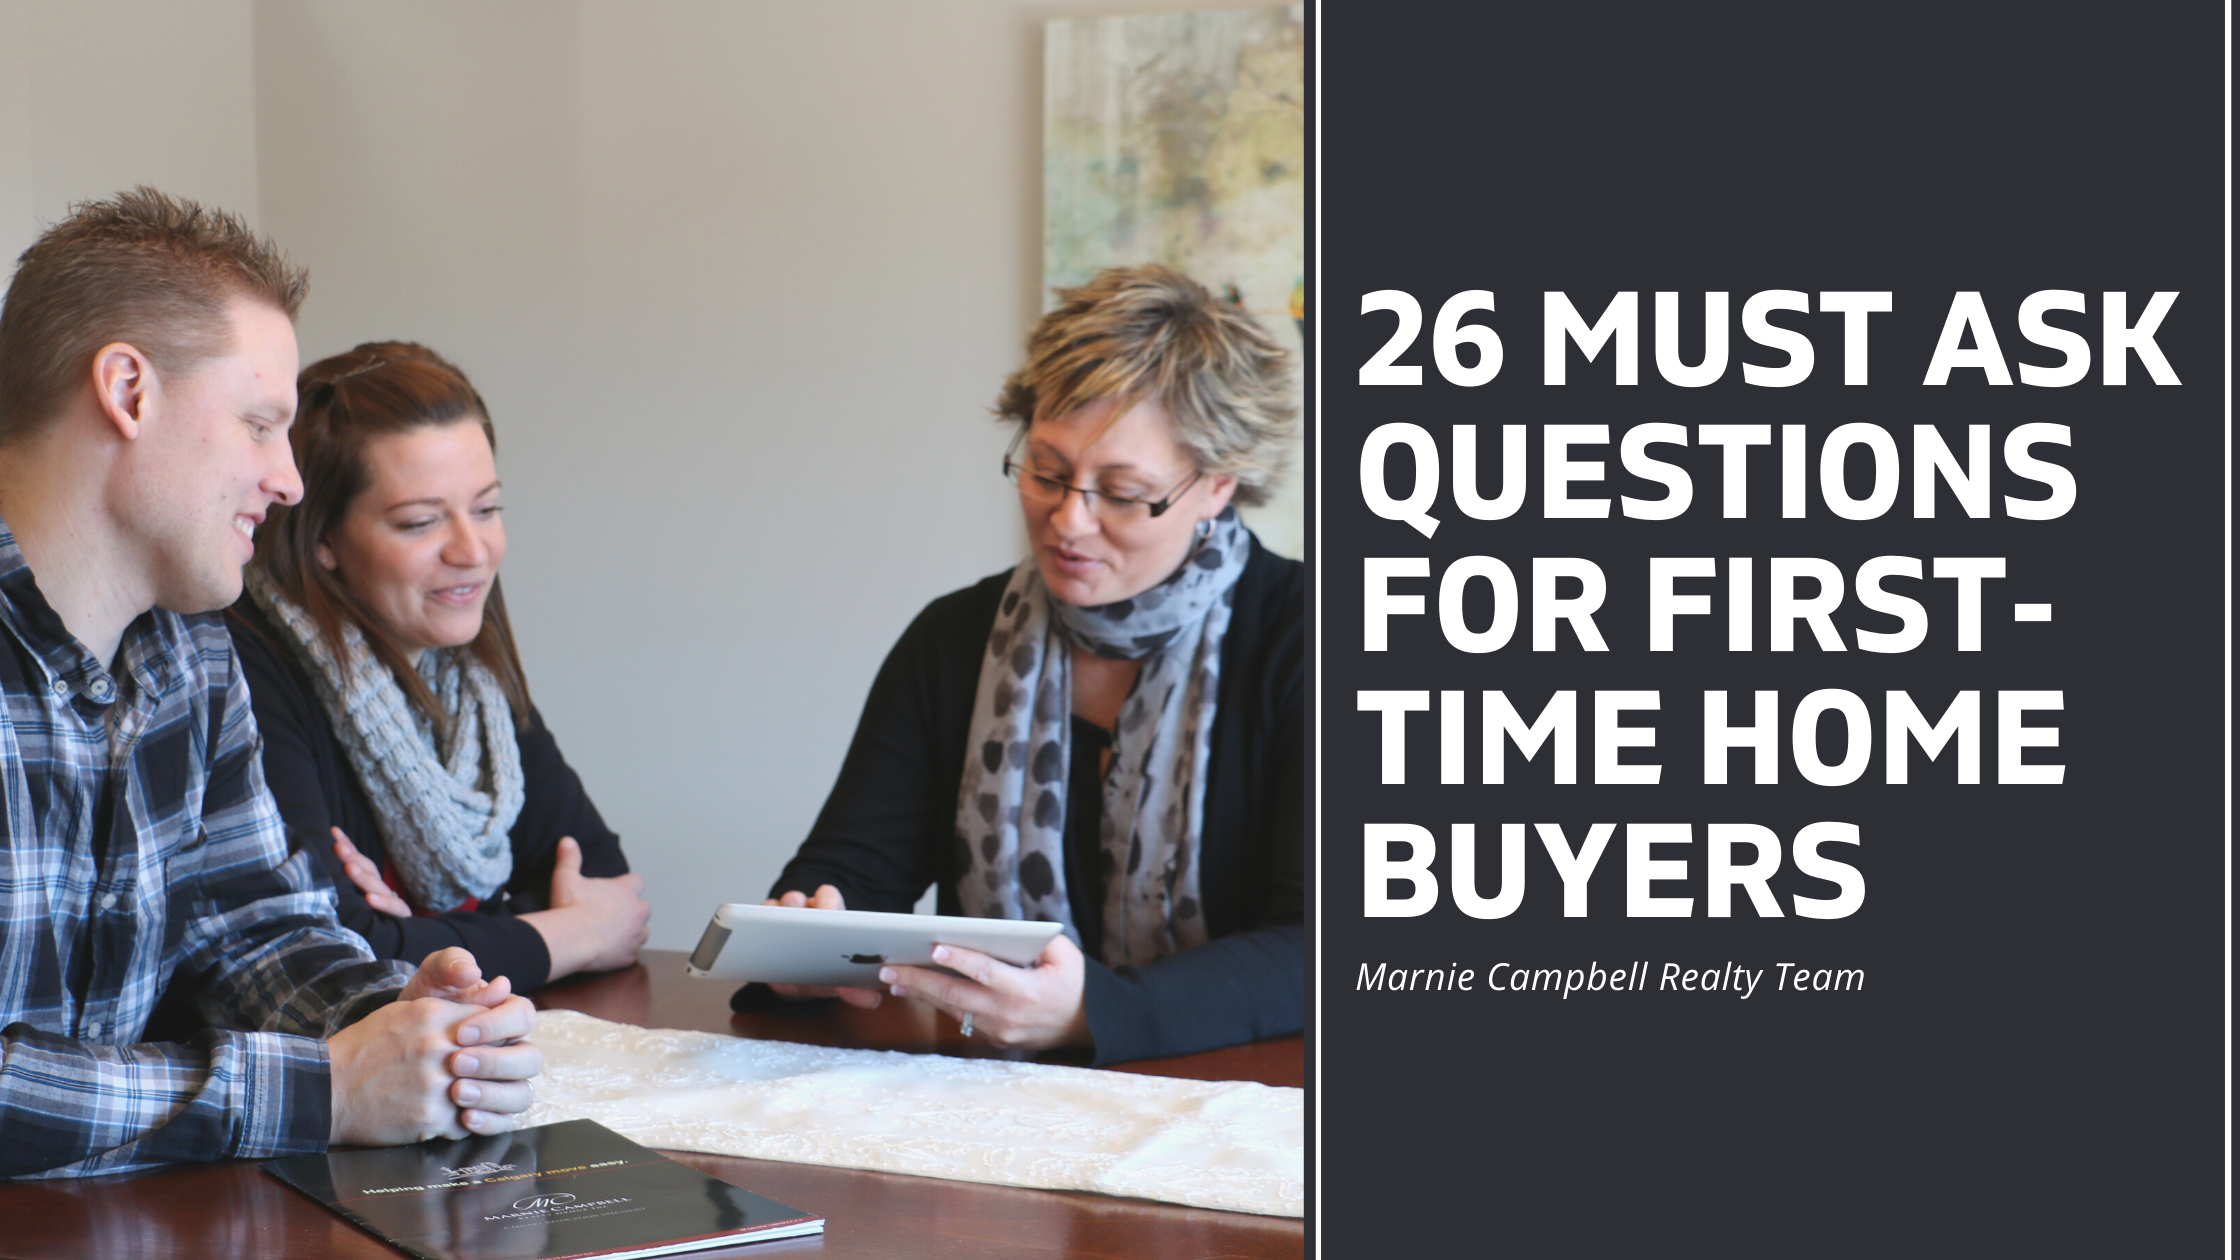 26 Must Ask Questions for First-Time Home Buyers